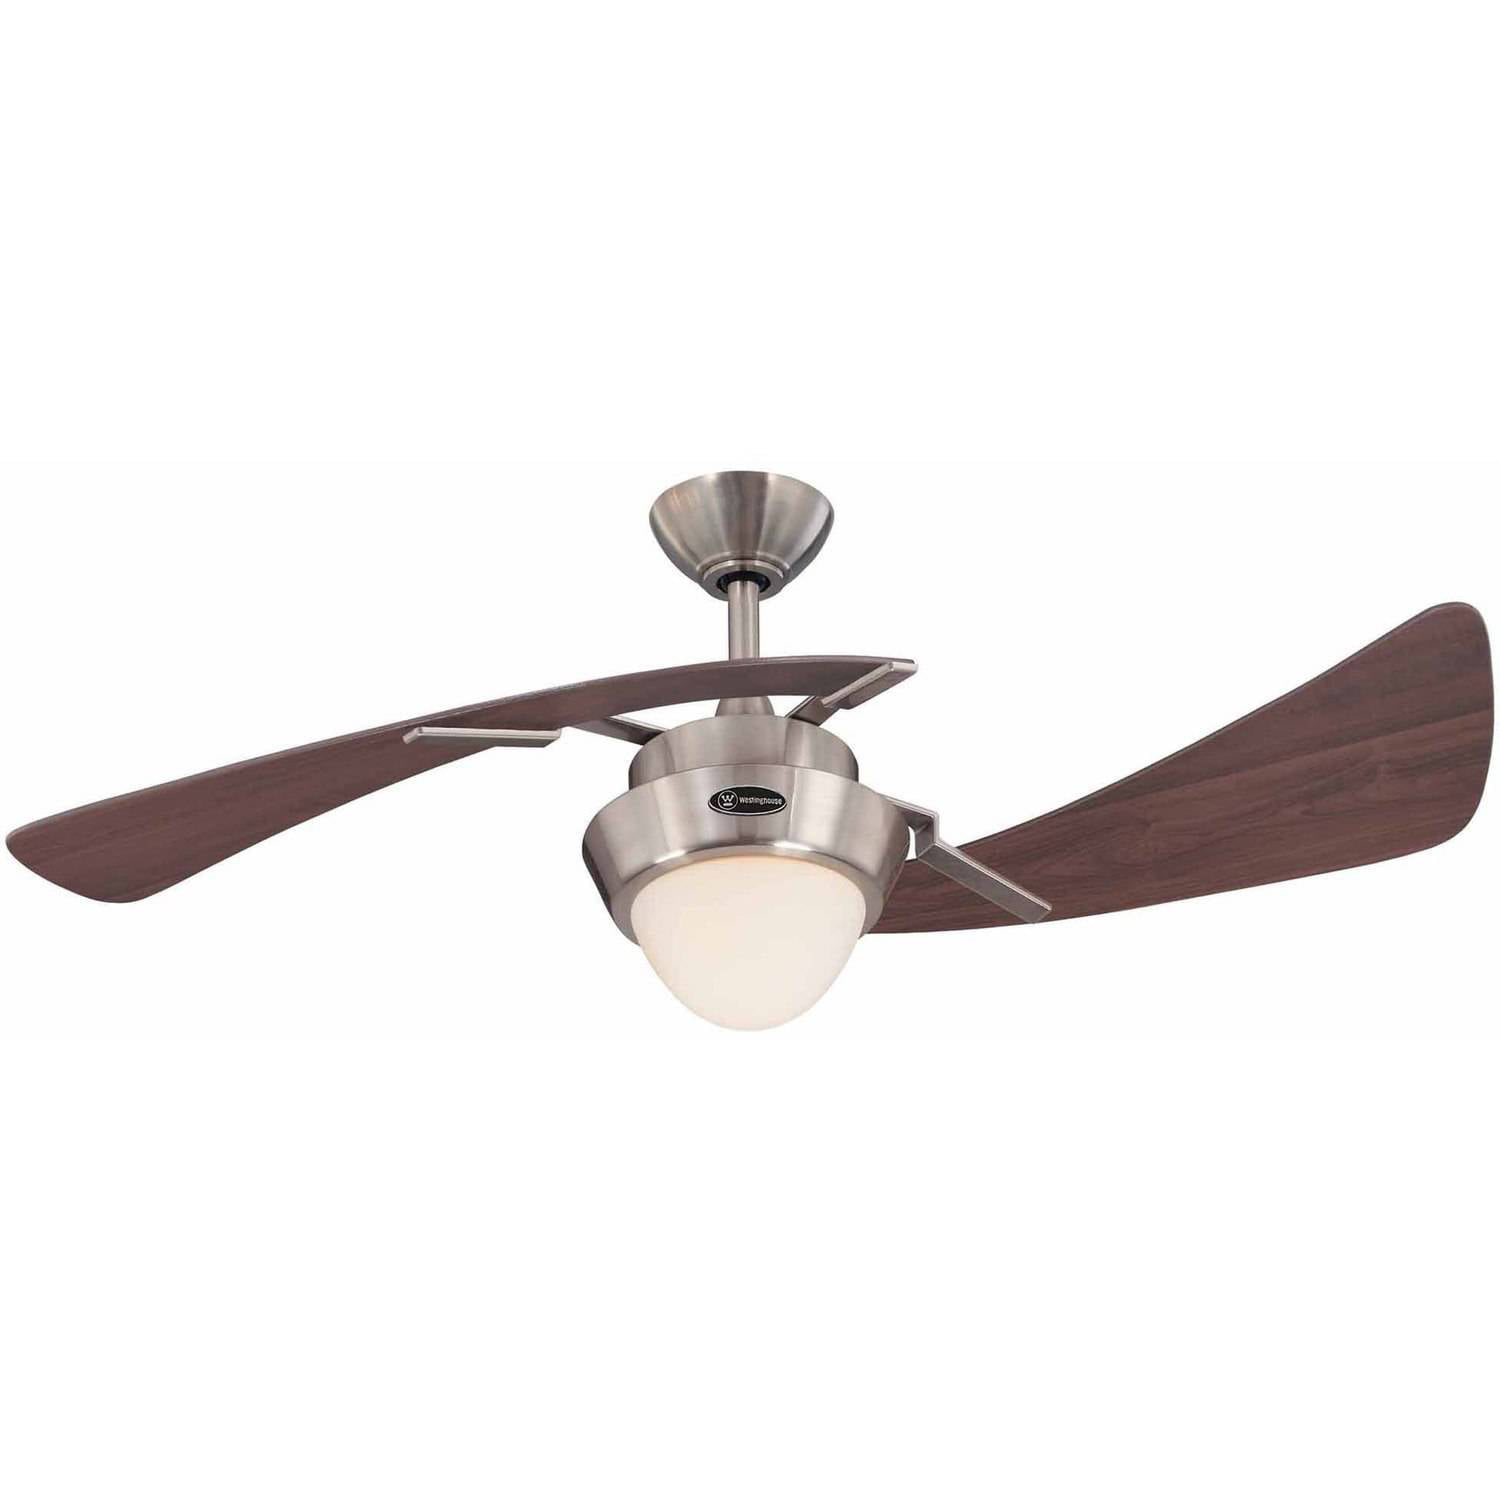 Harmony 48 inch two blade indoor ceiling fan walmart aloadofball Images